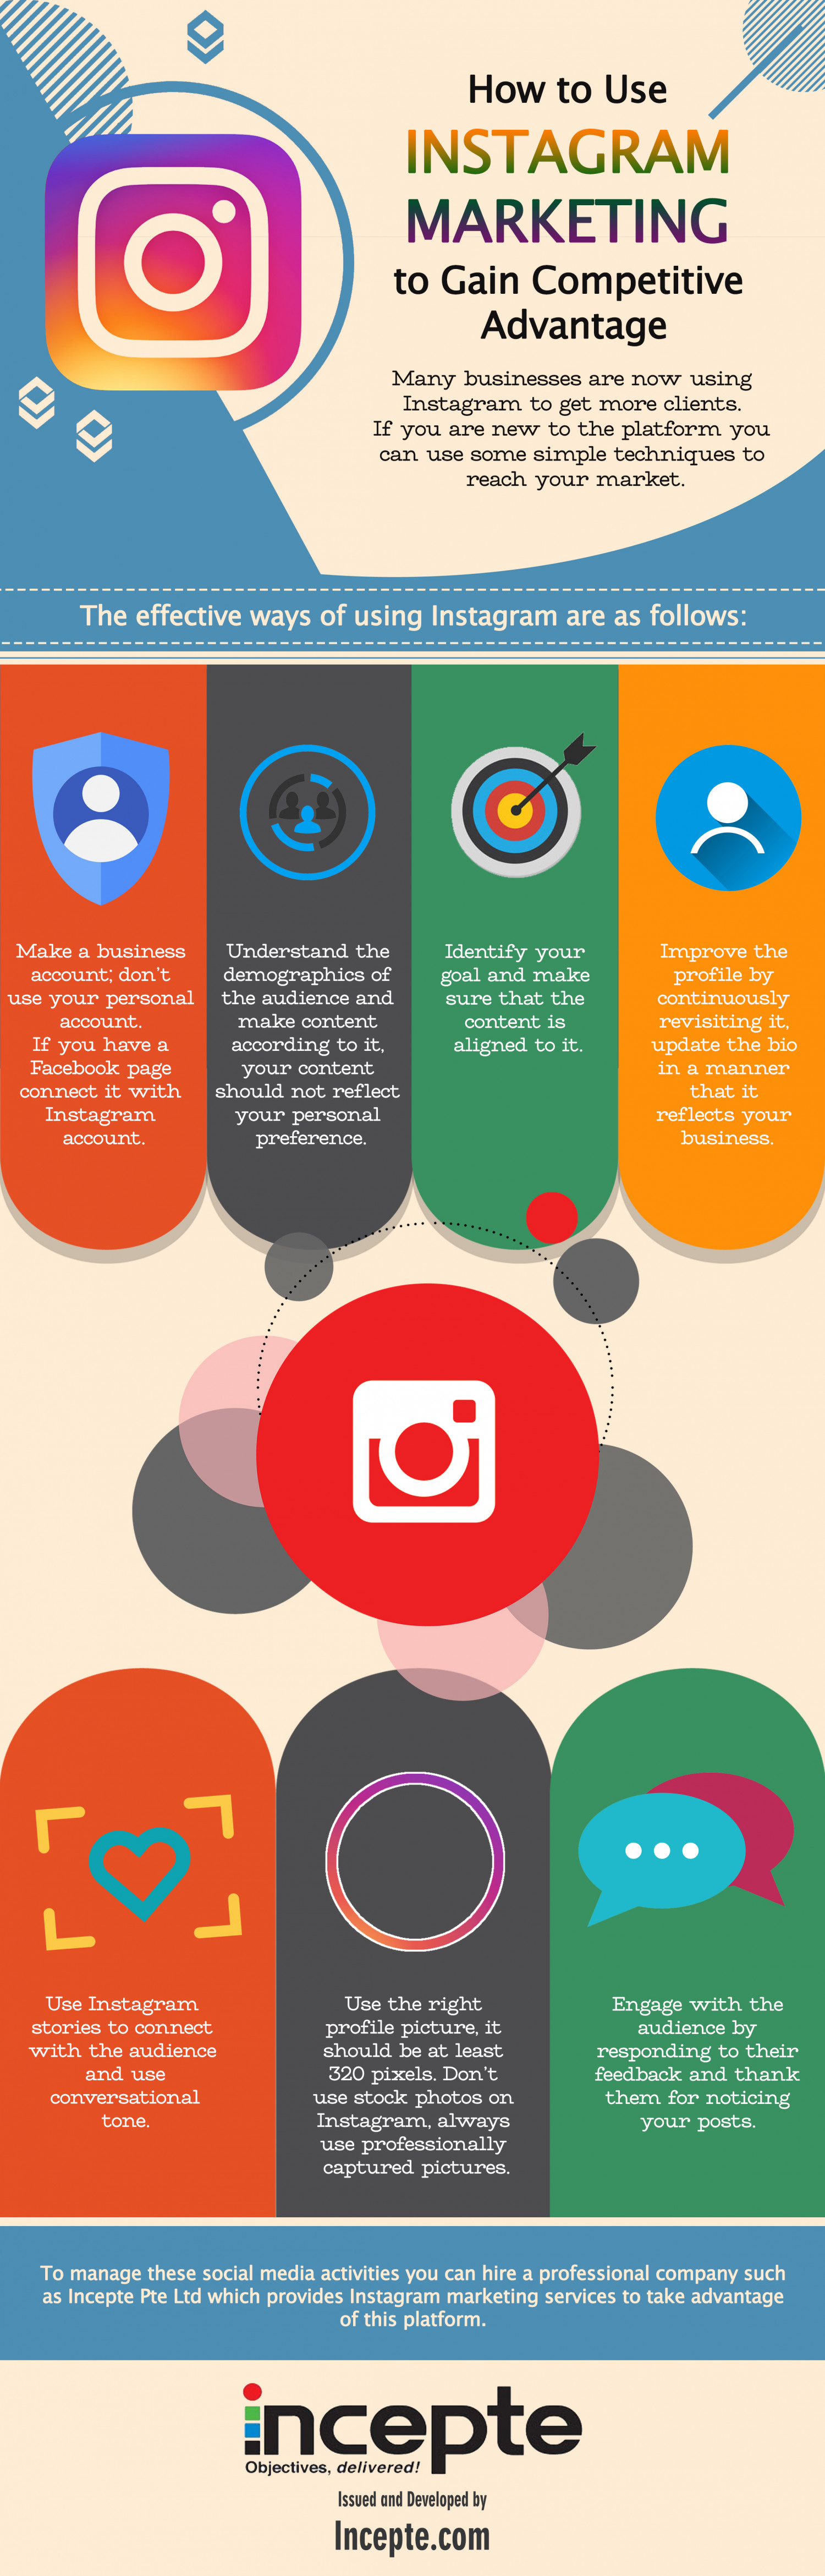 How to Use Instagram Marketing to Gain Competitive Advantage Infographic